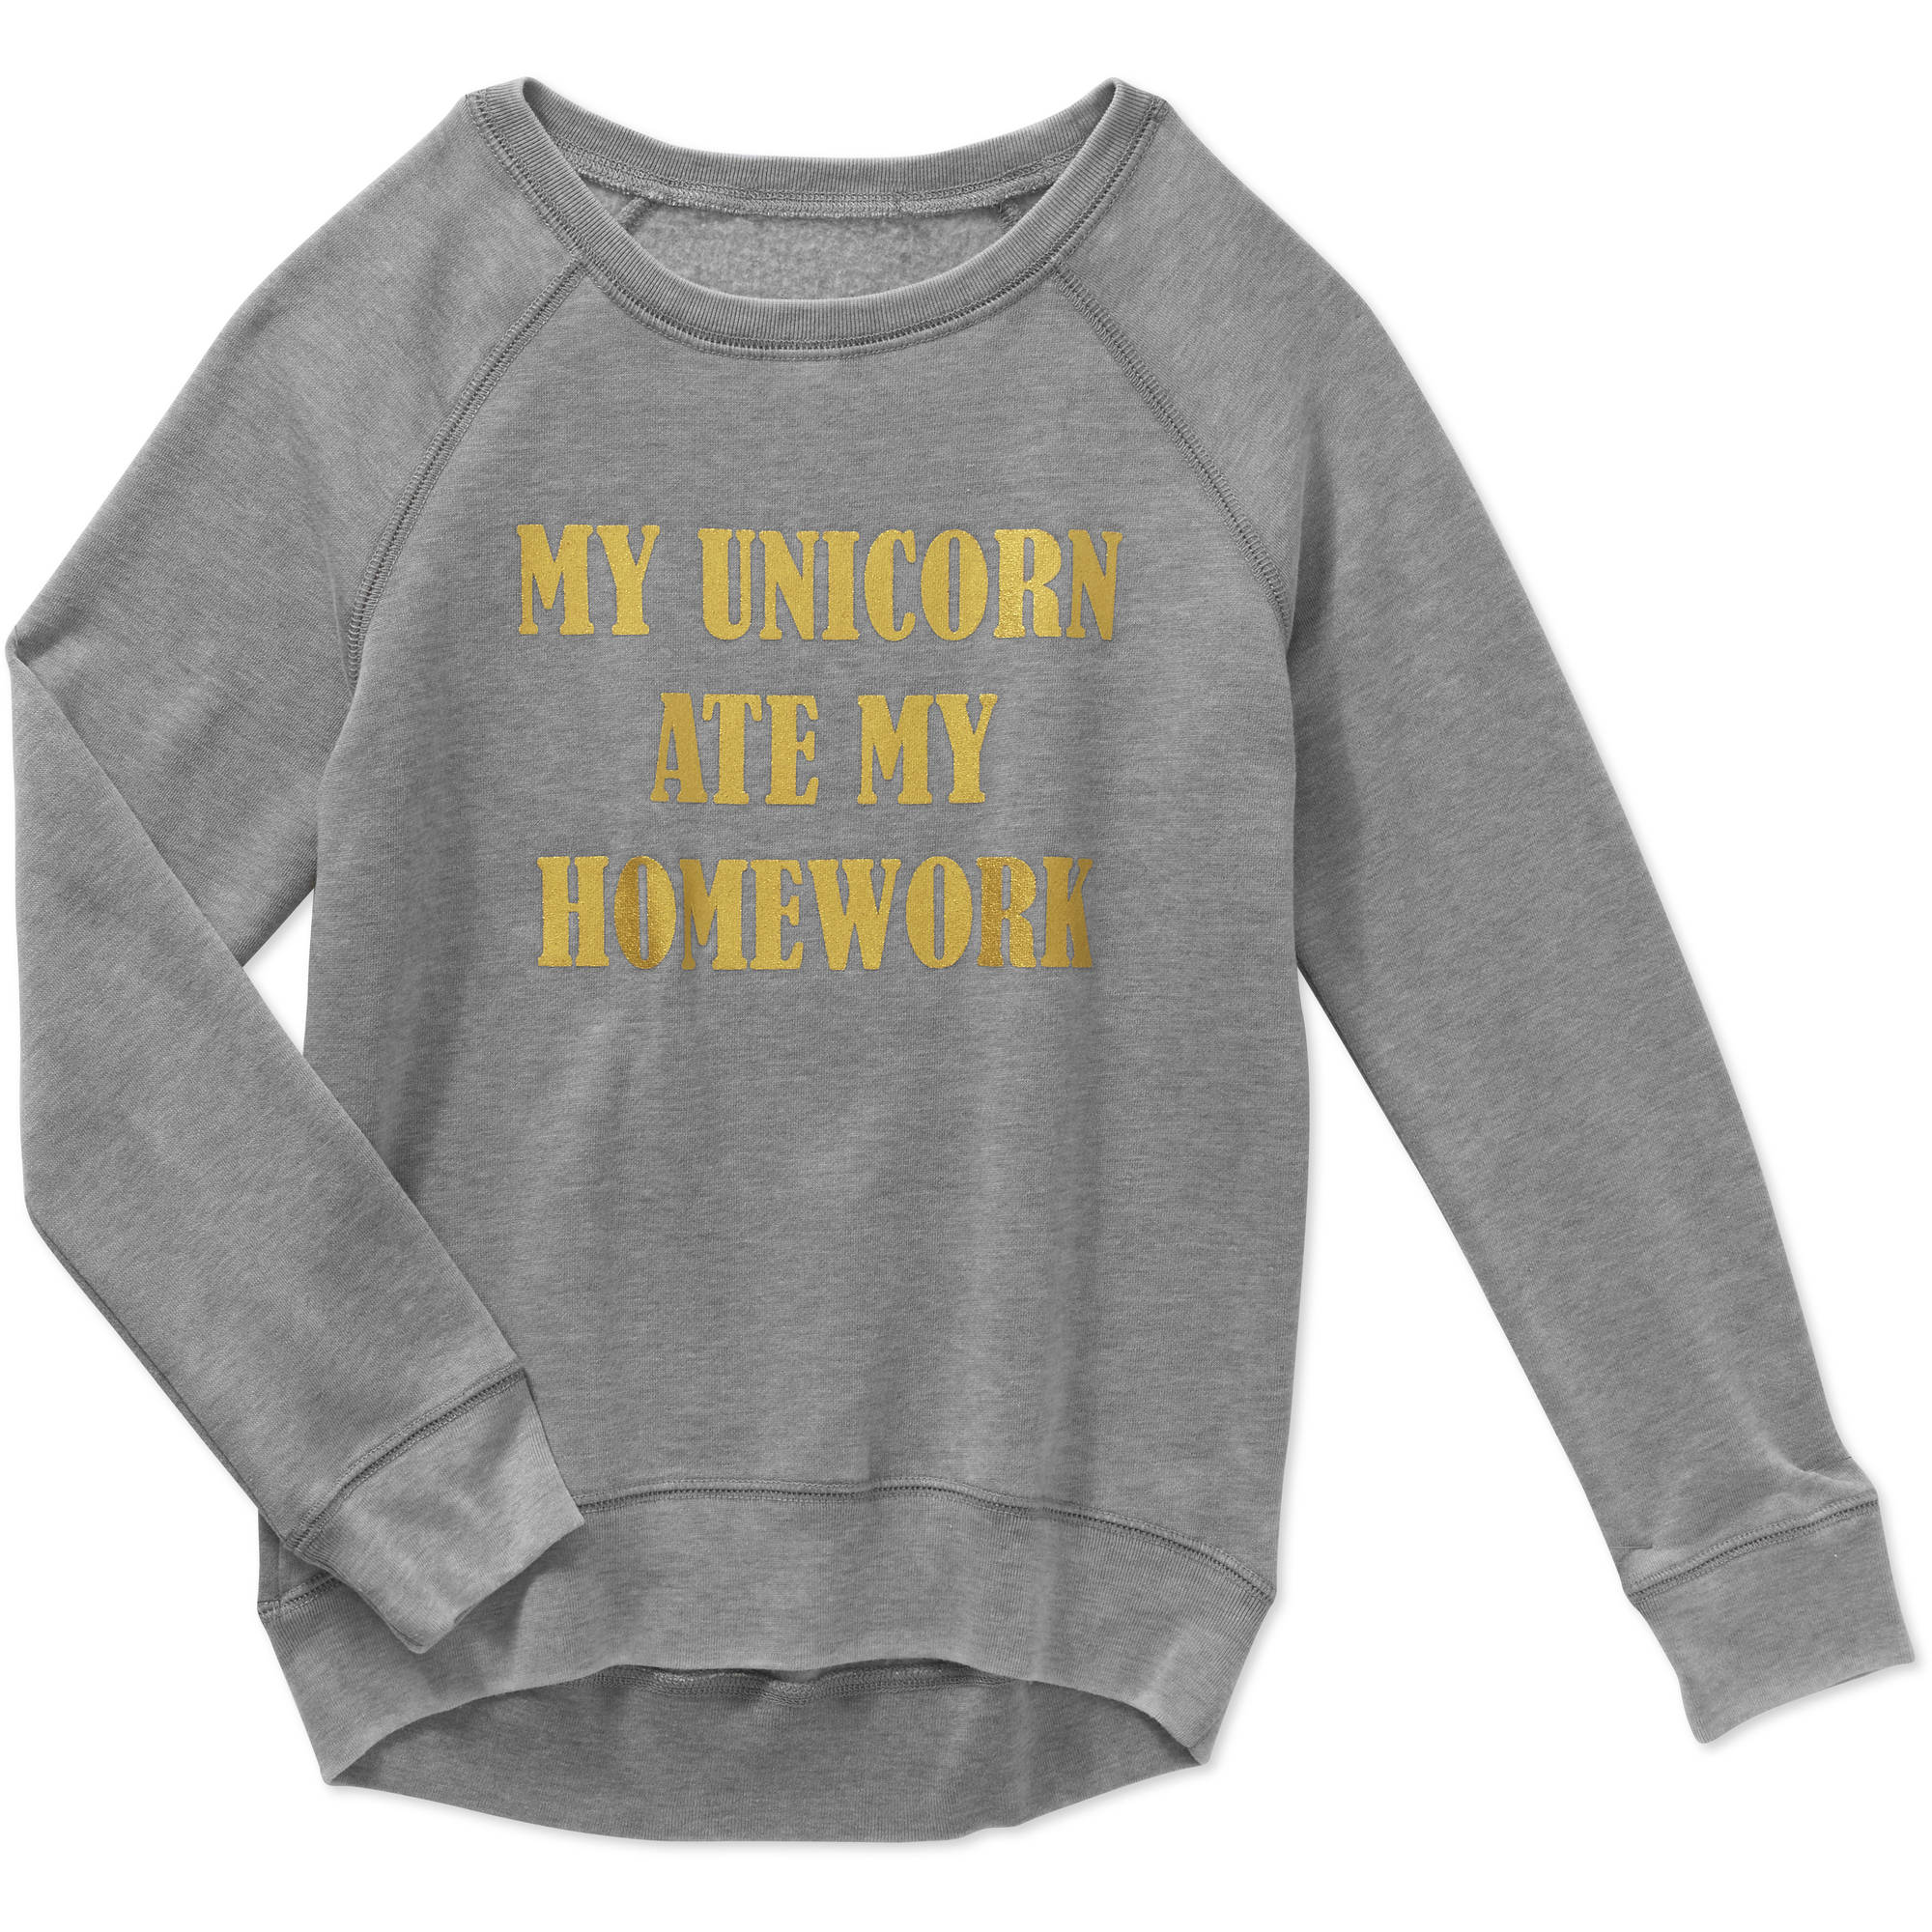 Gems And Jets Girls' Long Sleeve Crew Neck My Unicorn Ate My Homework Graphic Foil Pull Over Sweatshirt